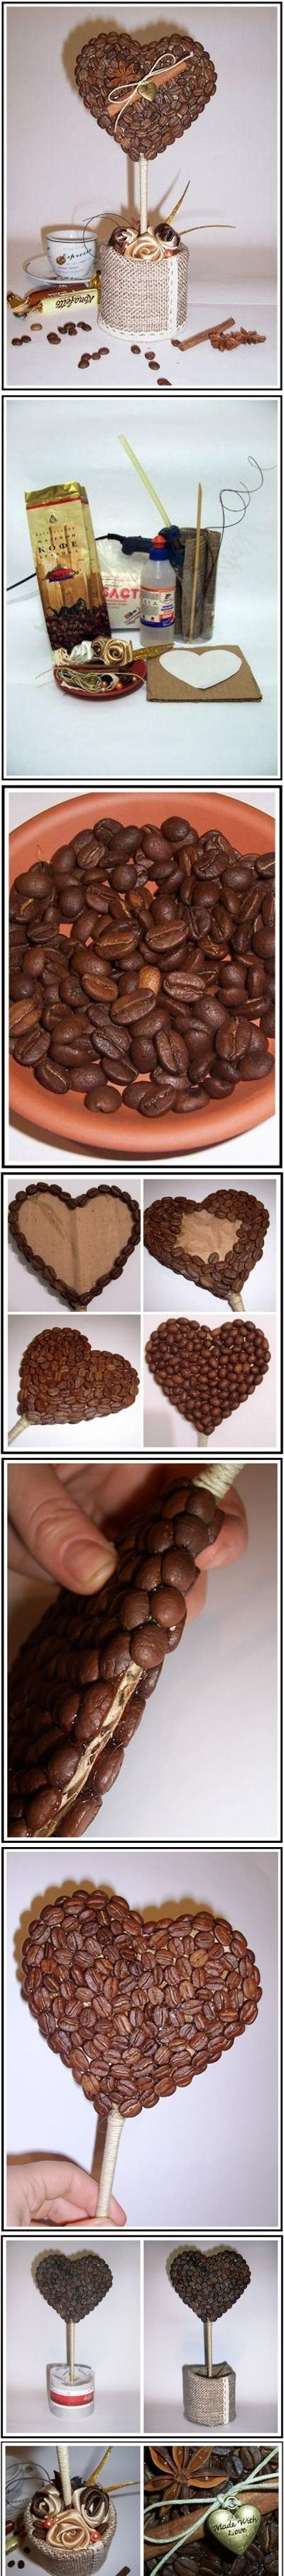 DIY Heart Coffee Tree Gift. Great for Mothers Day. :)